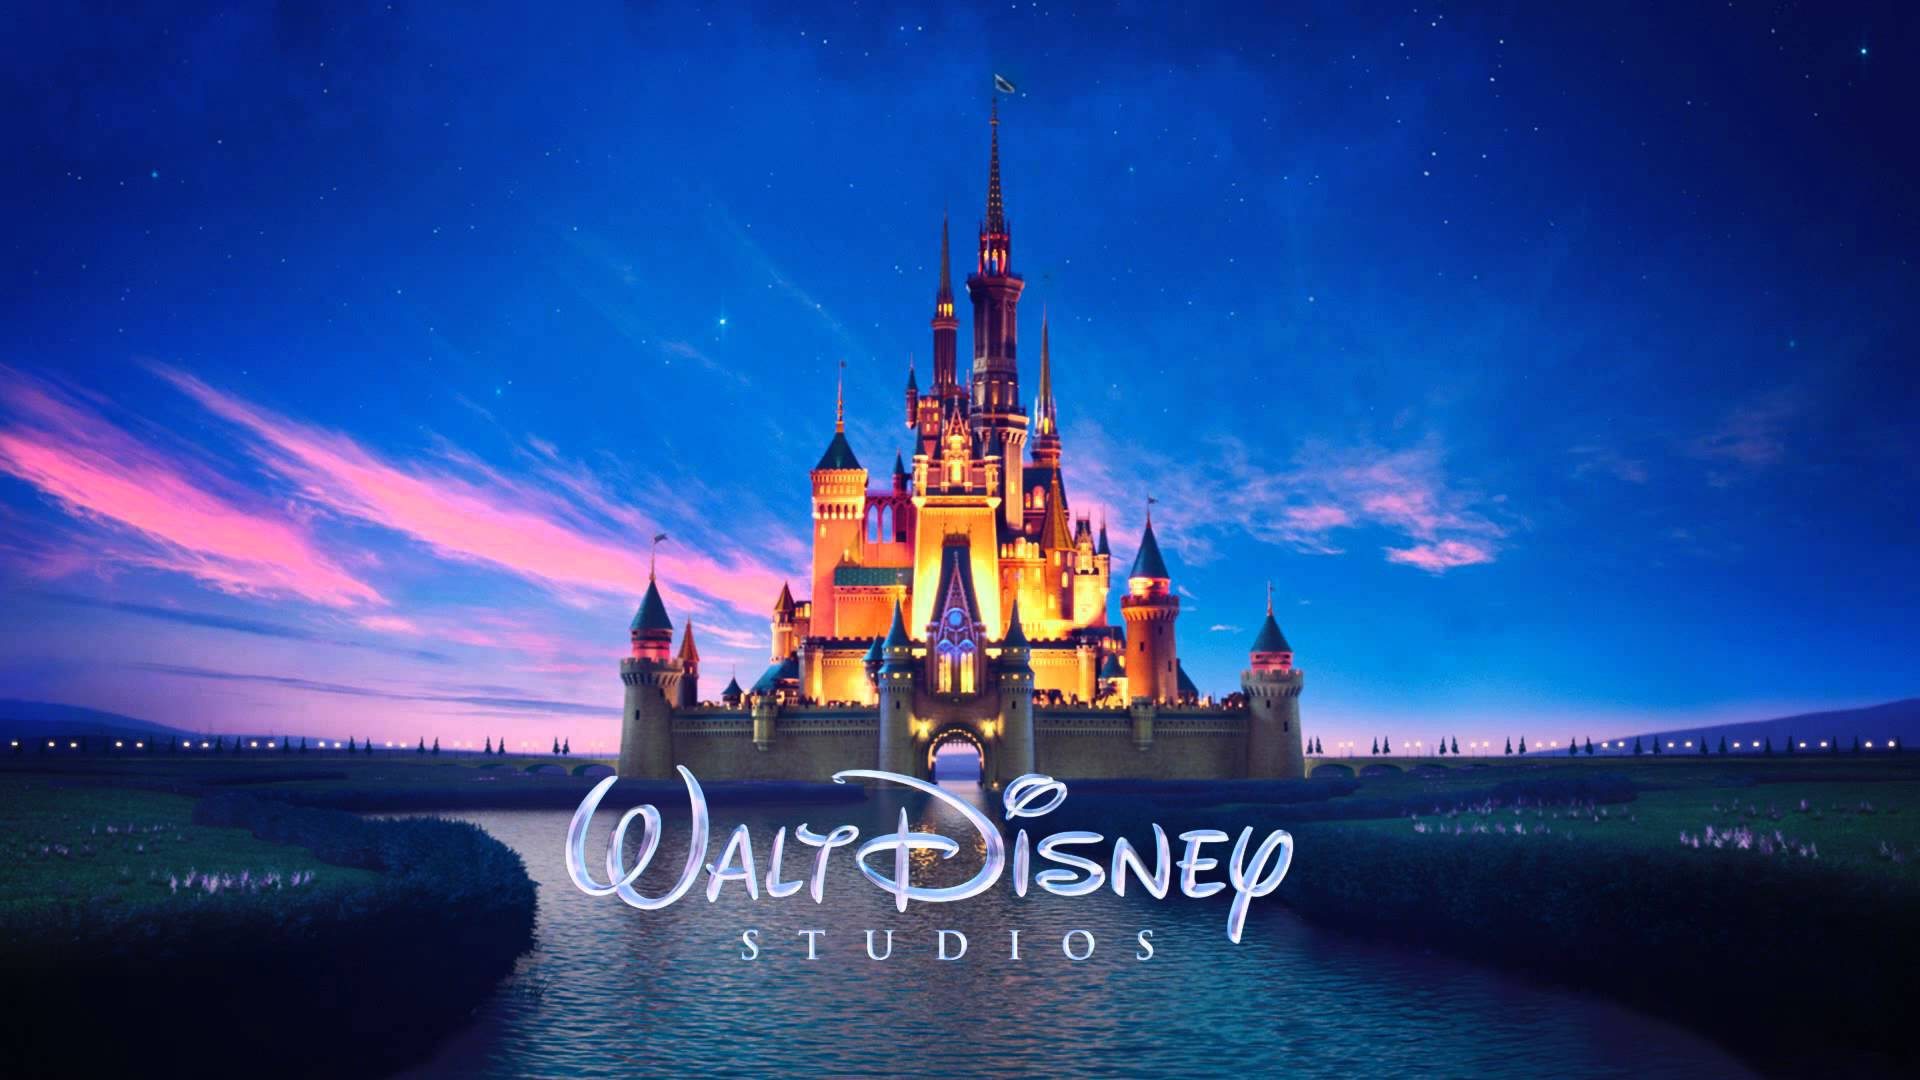 Nice wallpapers Disney 1920x1080px